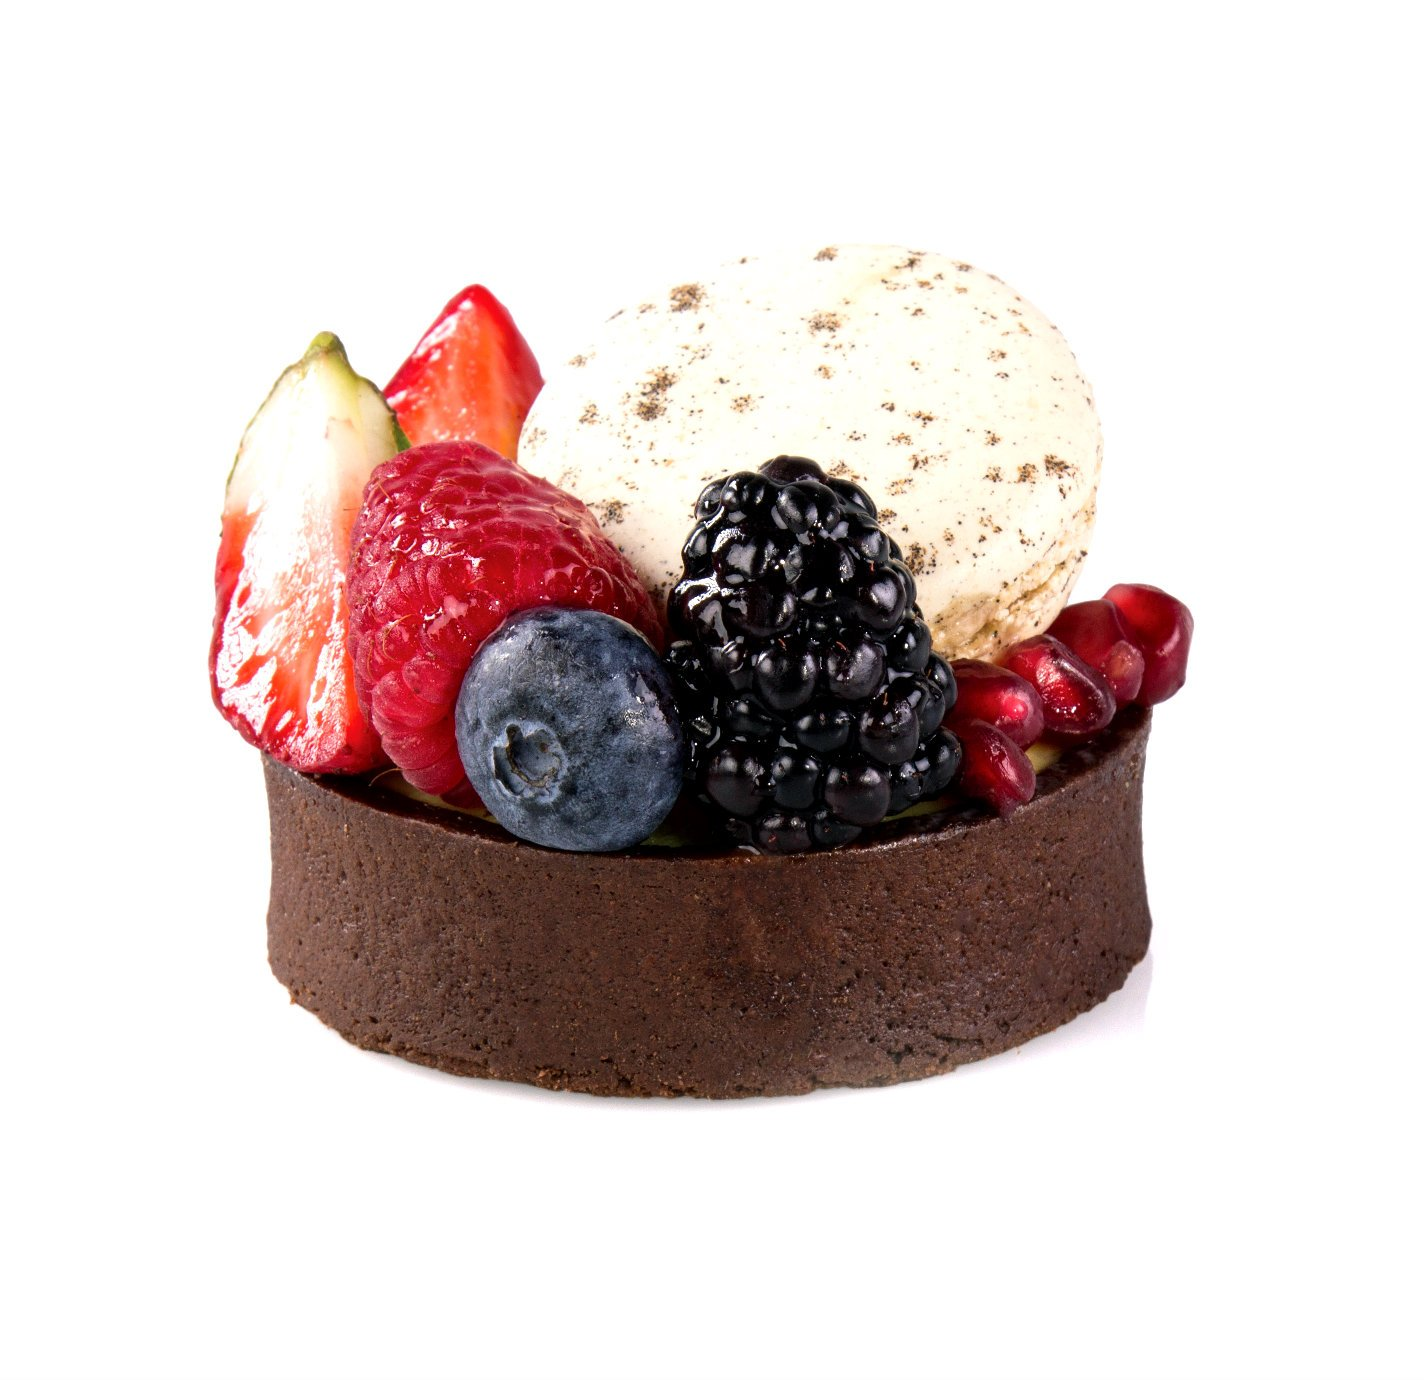 Chocolate Round Tart Shell Straight Edge Coated Inside with Cocoa Butter - 3'' Diameter - 60 pces